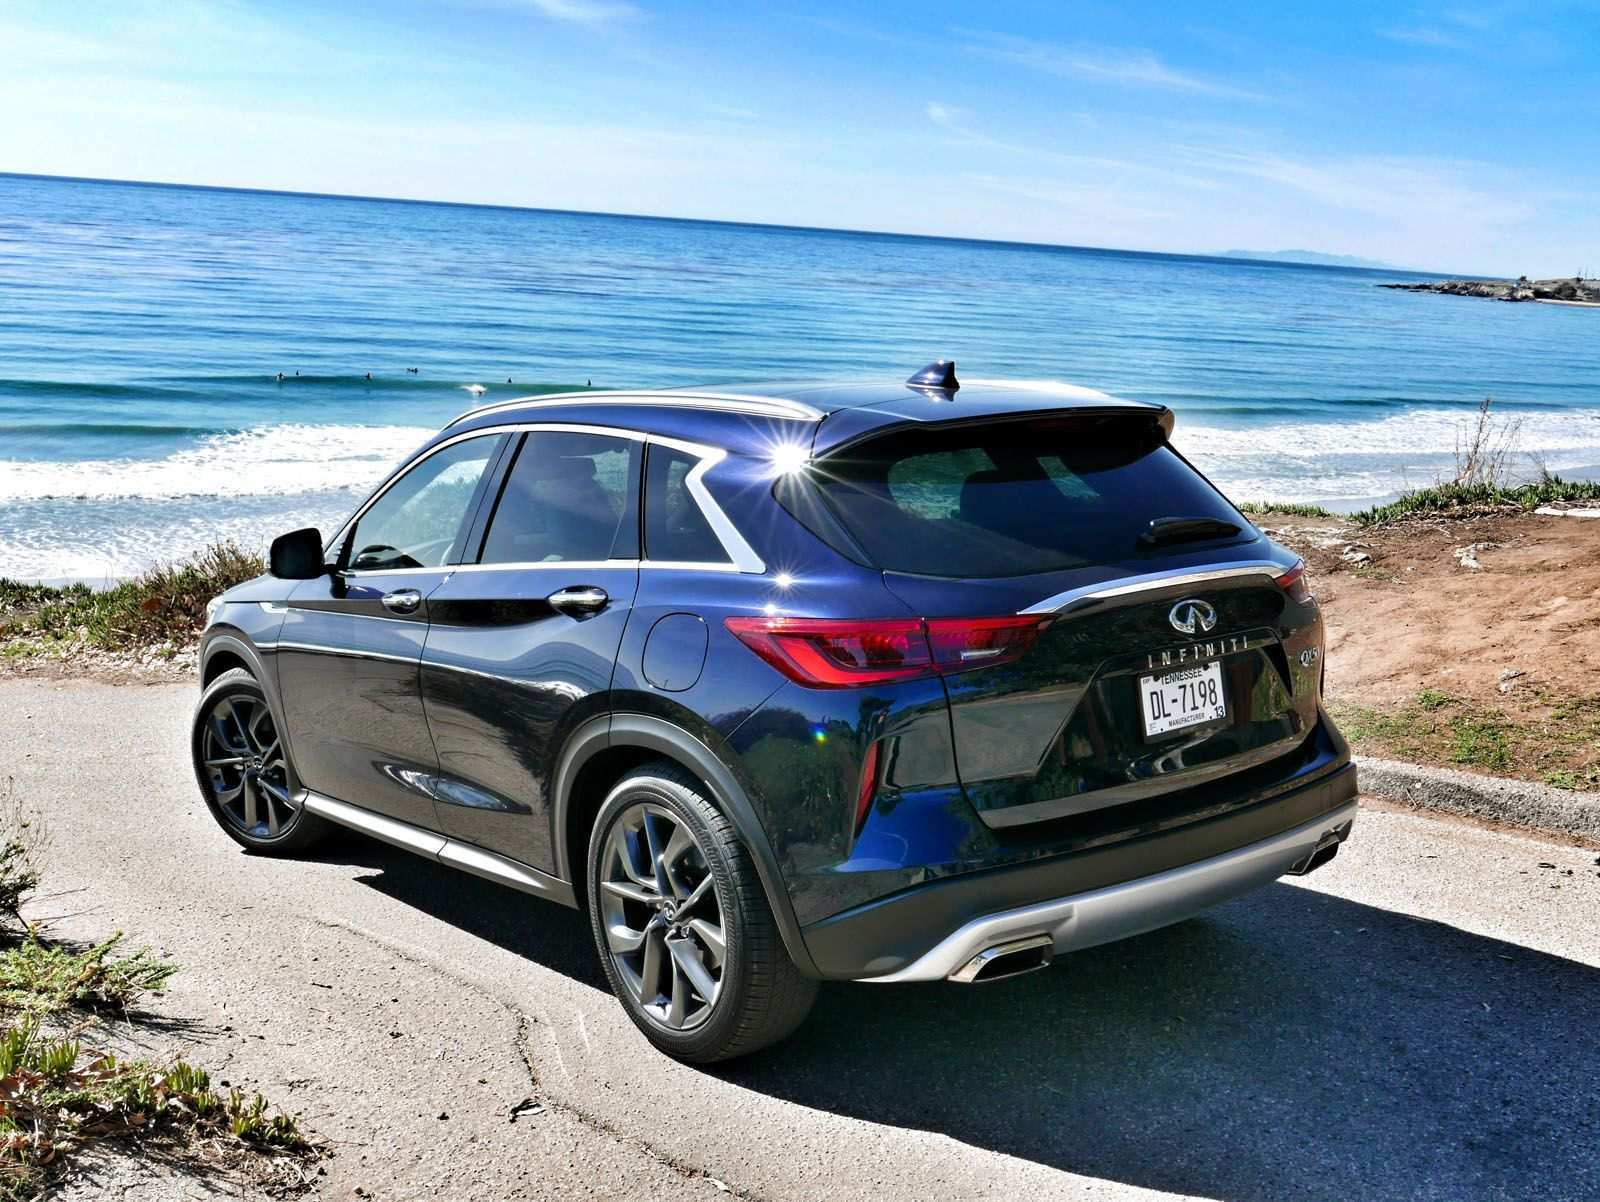 96 All New New 2019 Infiniti Qx50 New Review Concept with New 2019 Infiniti Qx50 New Review